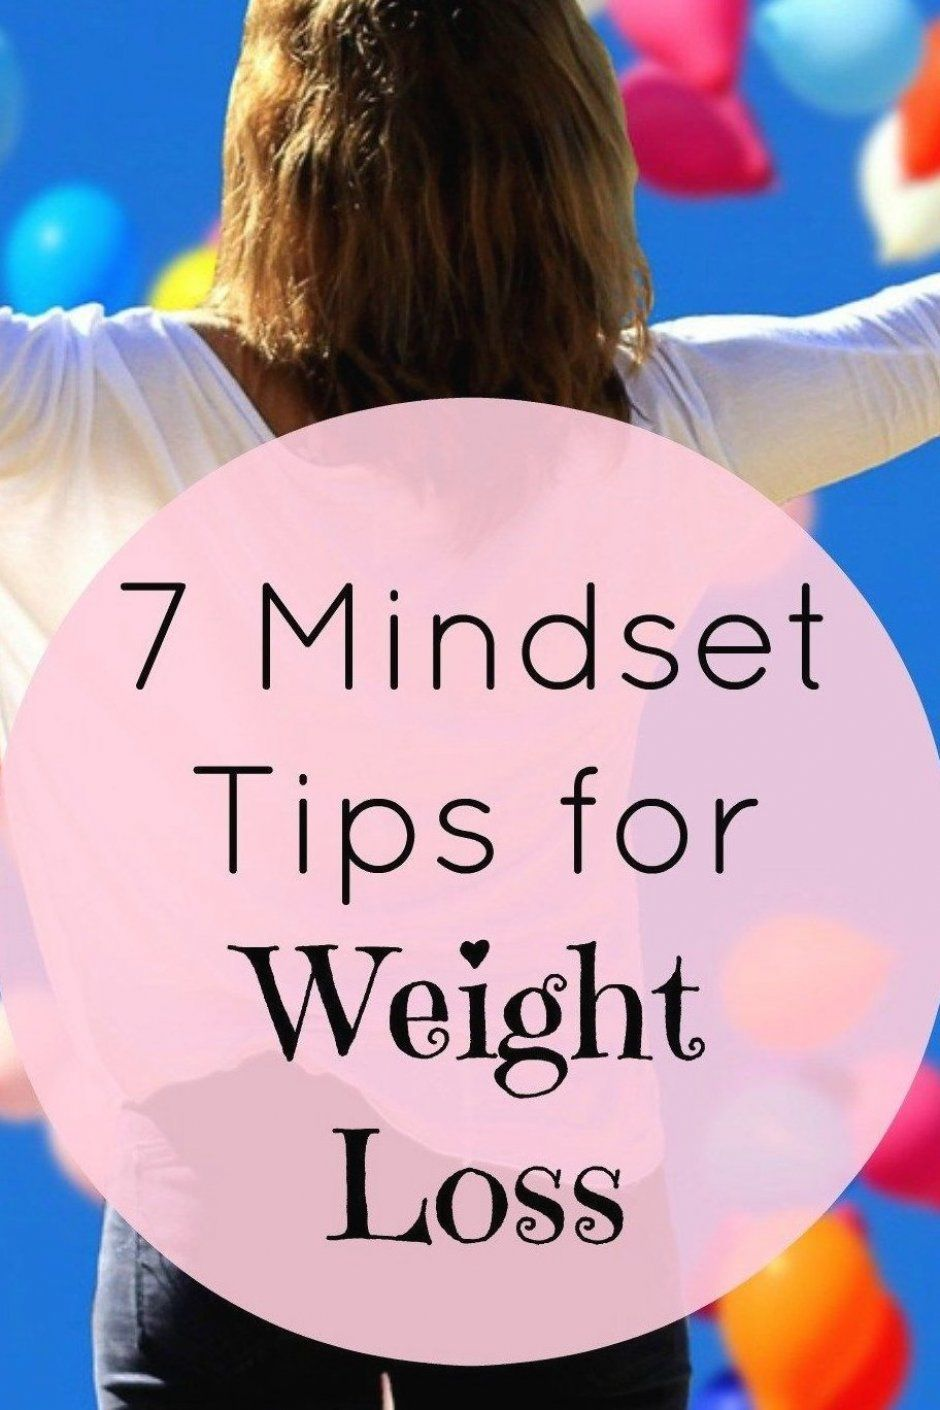 7 mindset tips for weight loss  #fitness #workout #fitnesstip #health